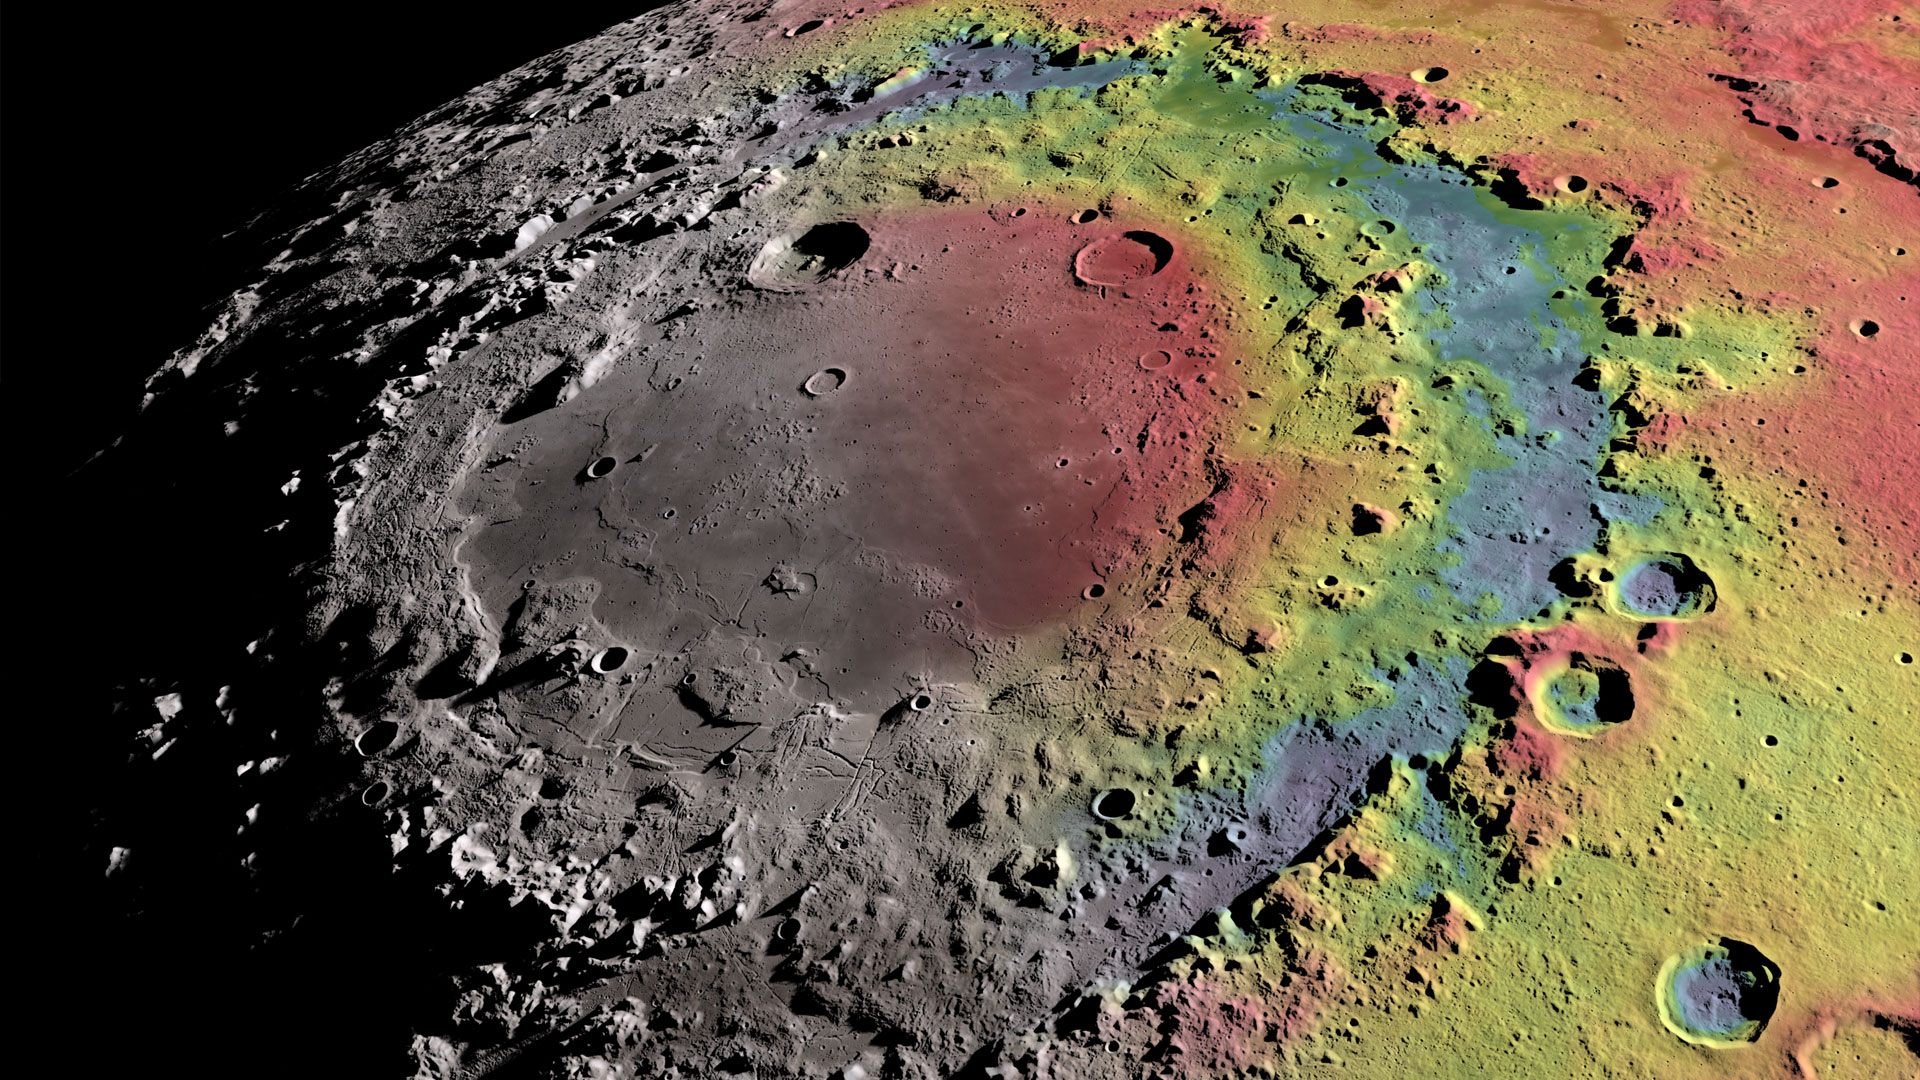 take a tour of the moon in all new 4k resolution